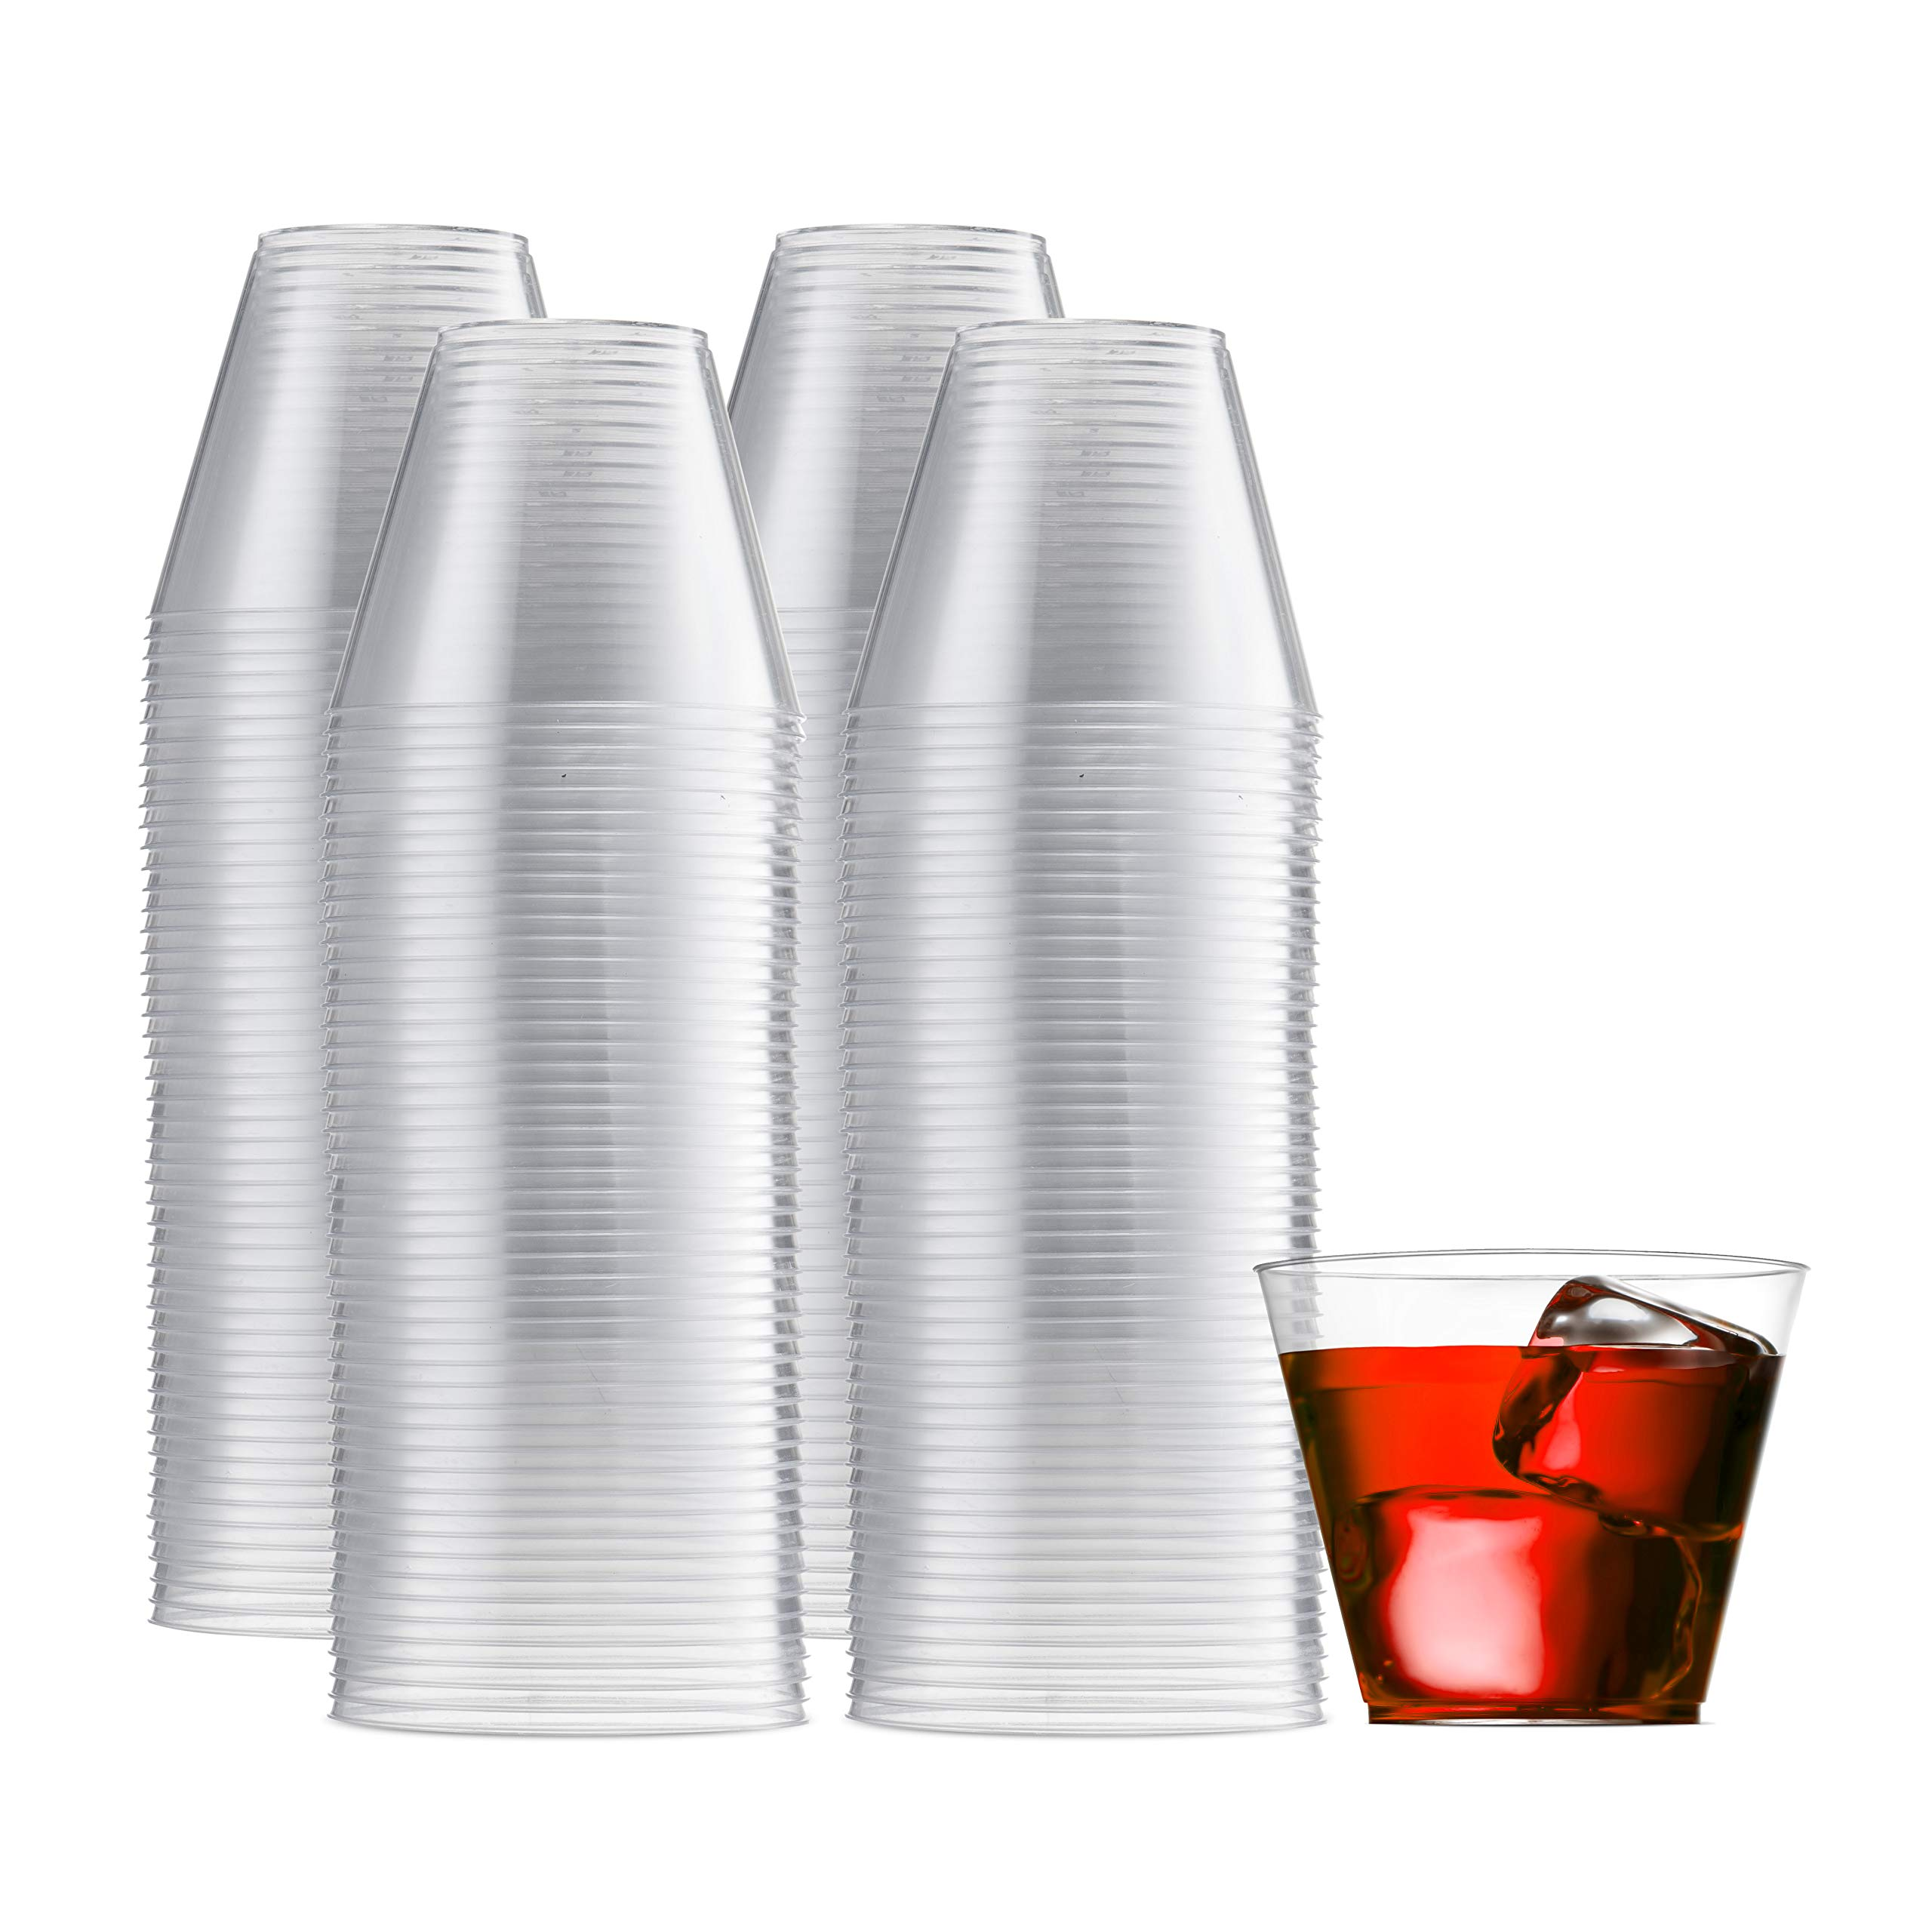 200 Clear Plastic Cups 9 Oz Old Fashioned Tumblers Fancy Disposable Wedding Party Cups Recyclable and BPA-Free by Munfix